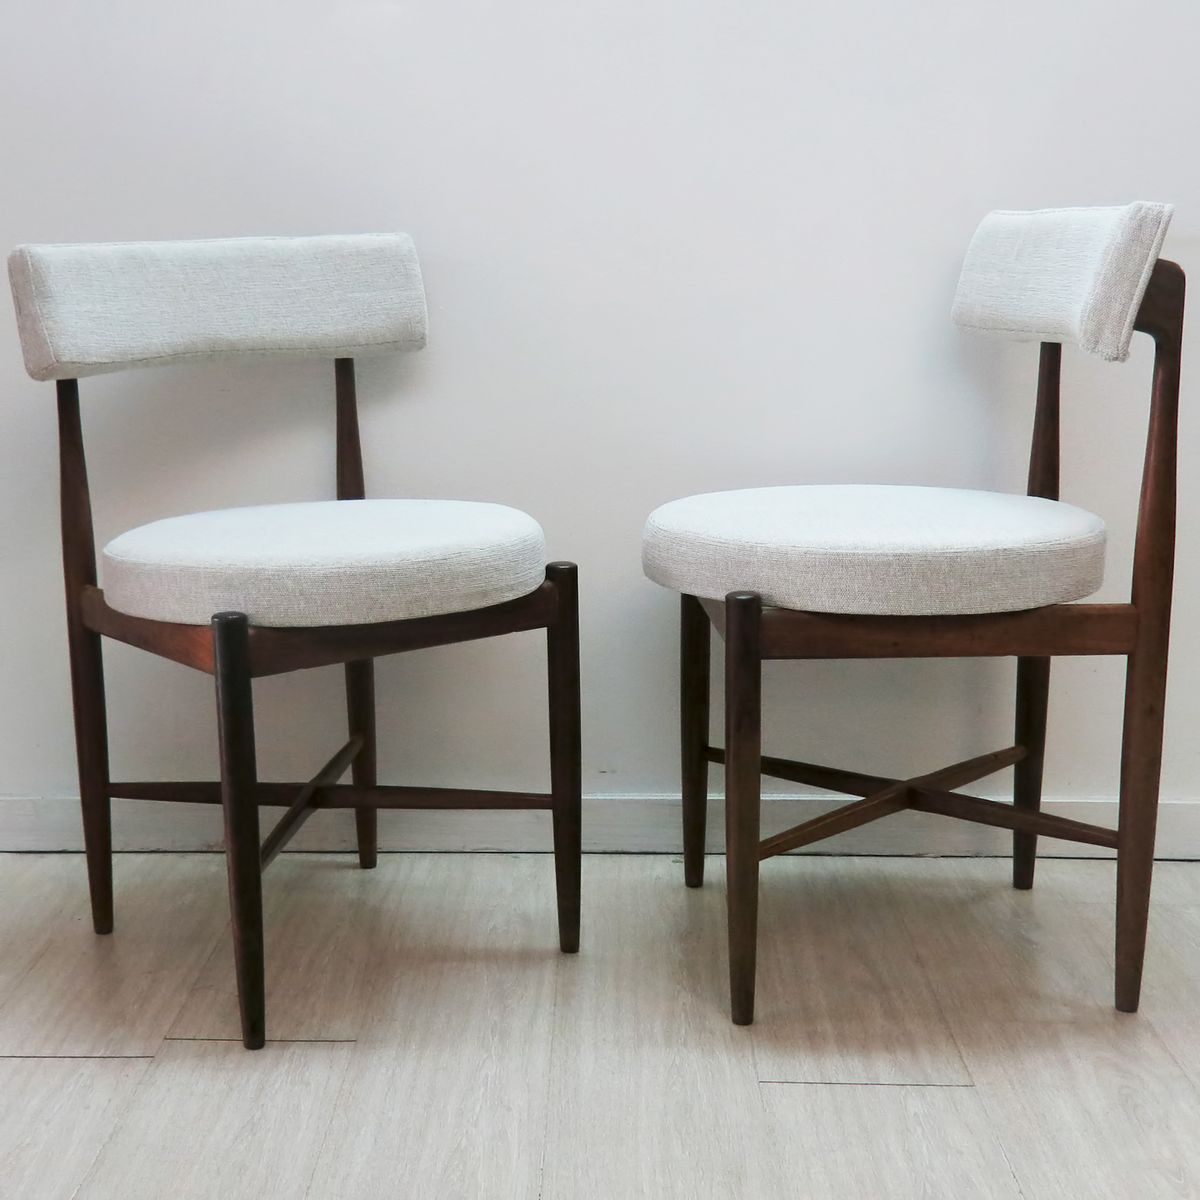 Vintage Dining Chairs By Ib Kofod Larsen For GPlan 1960 Set Of 4 For Sale A